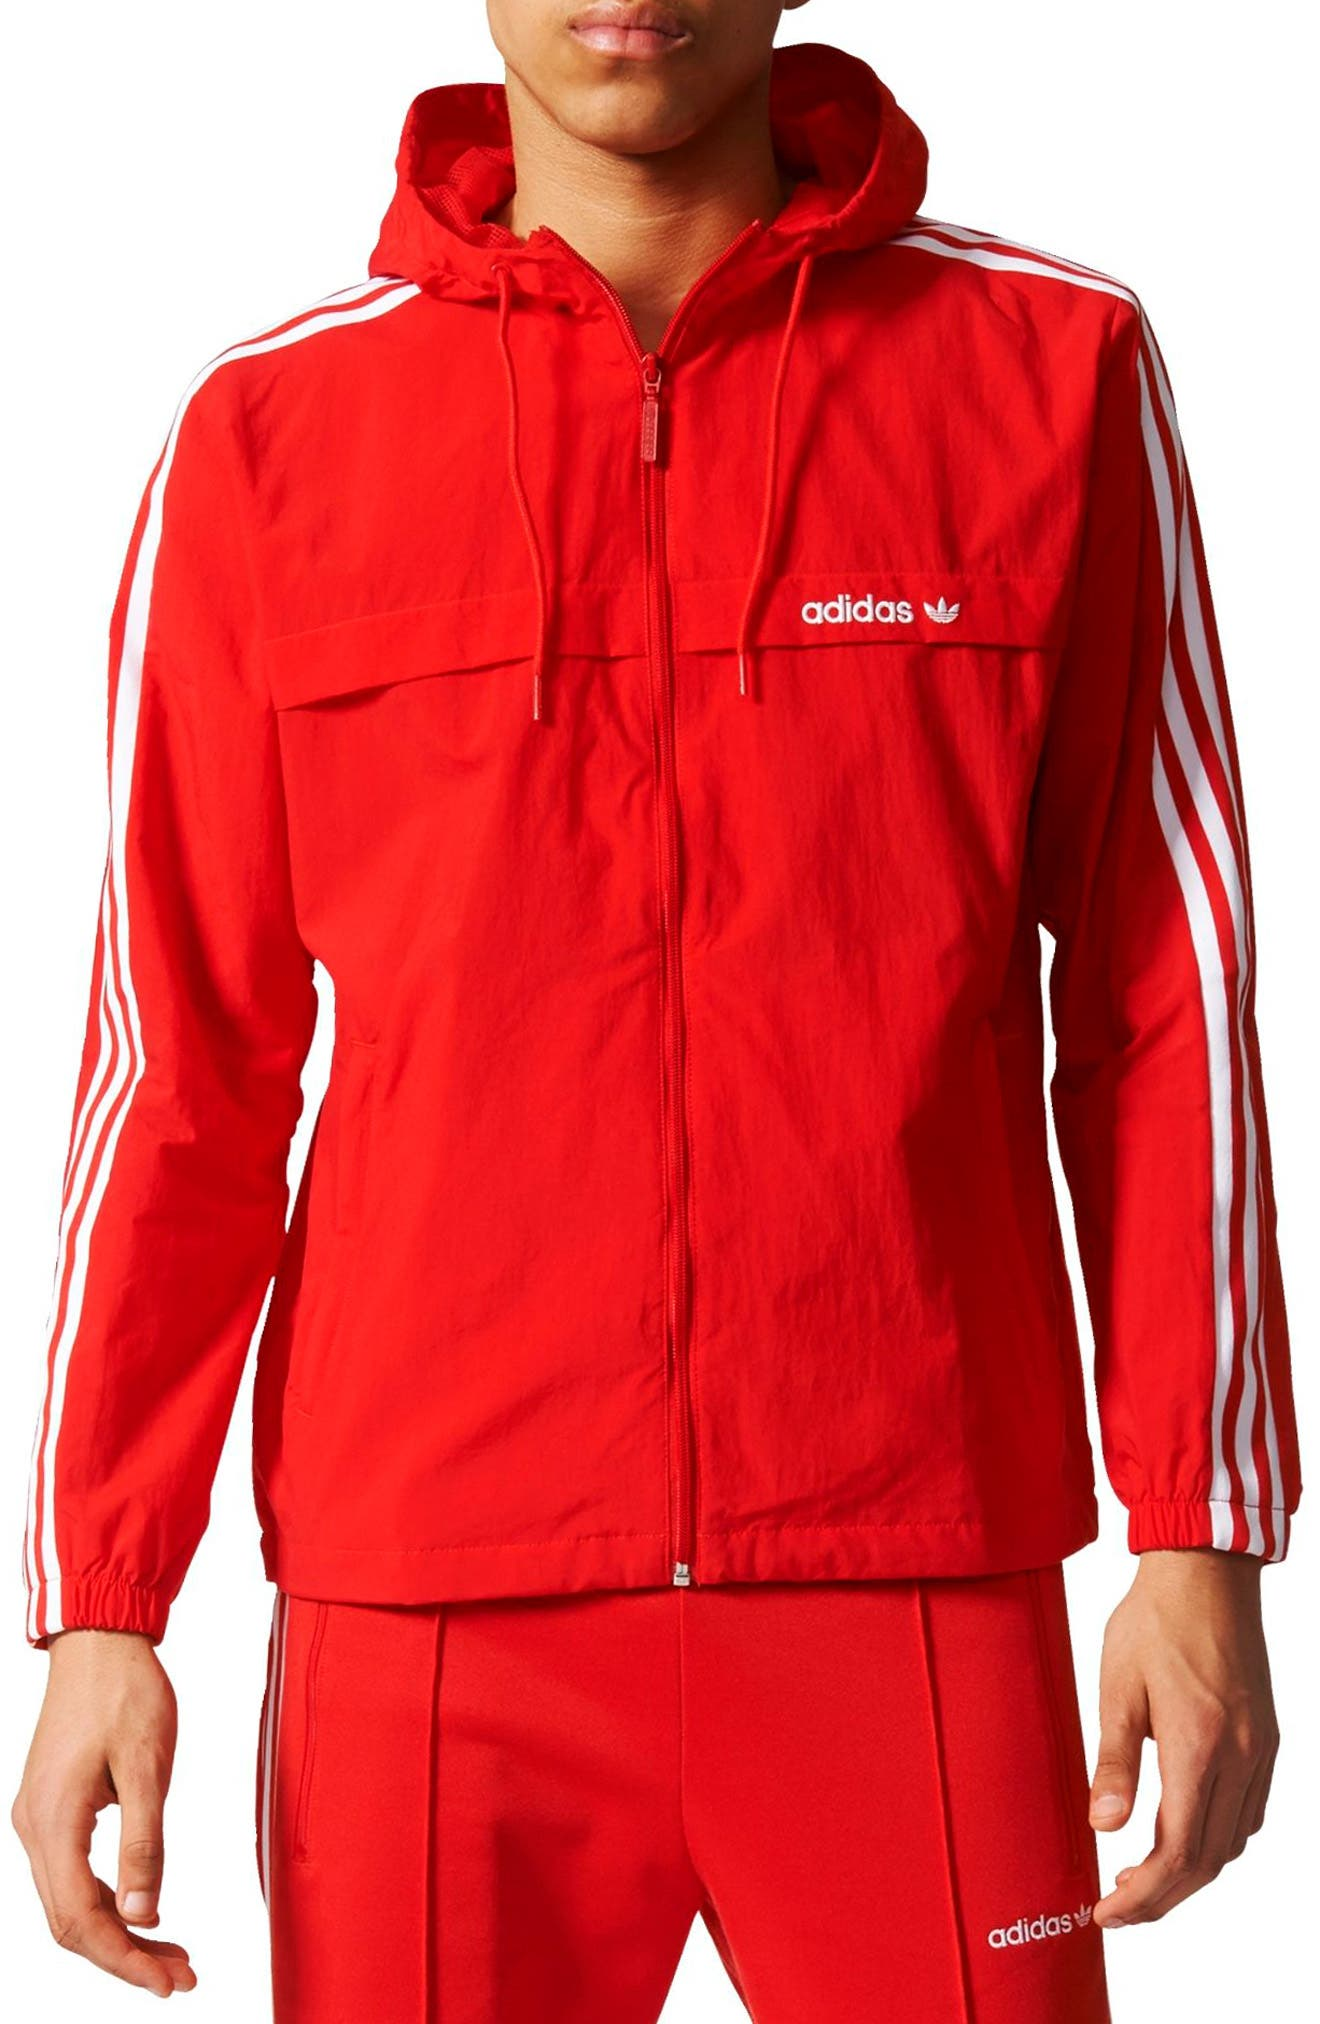 3-Stripe Hooded Windbreaker,                             Main thumbnail 1, color,                             Vivid Red